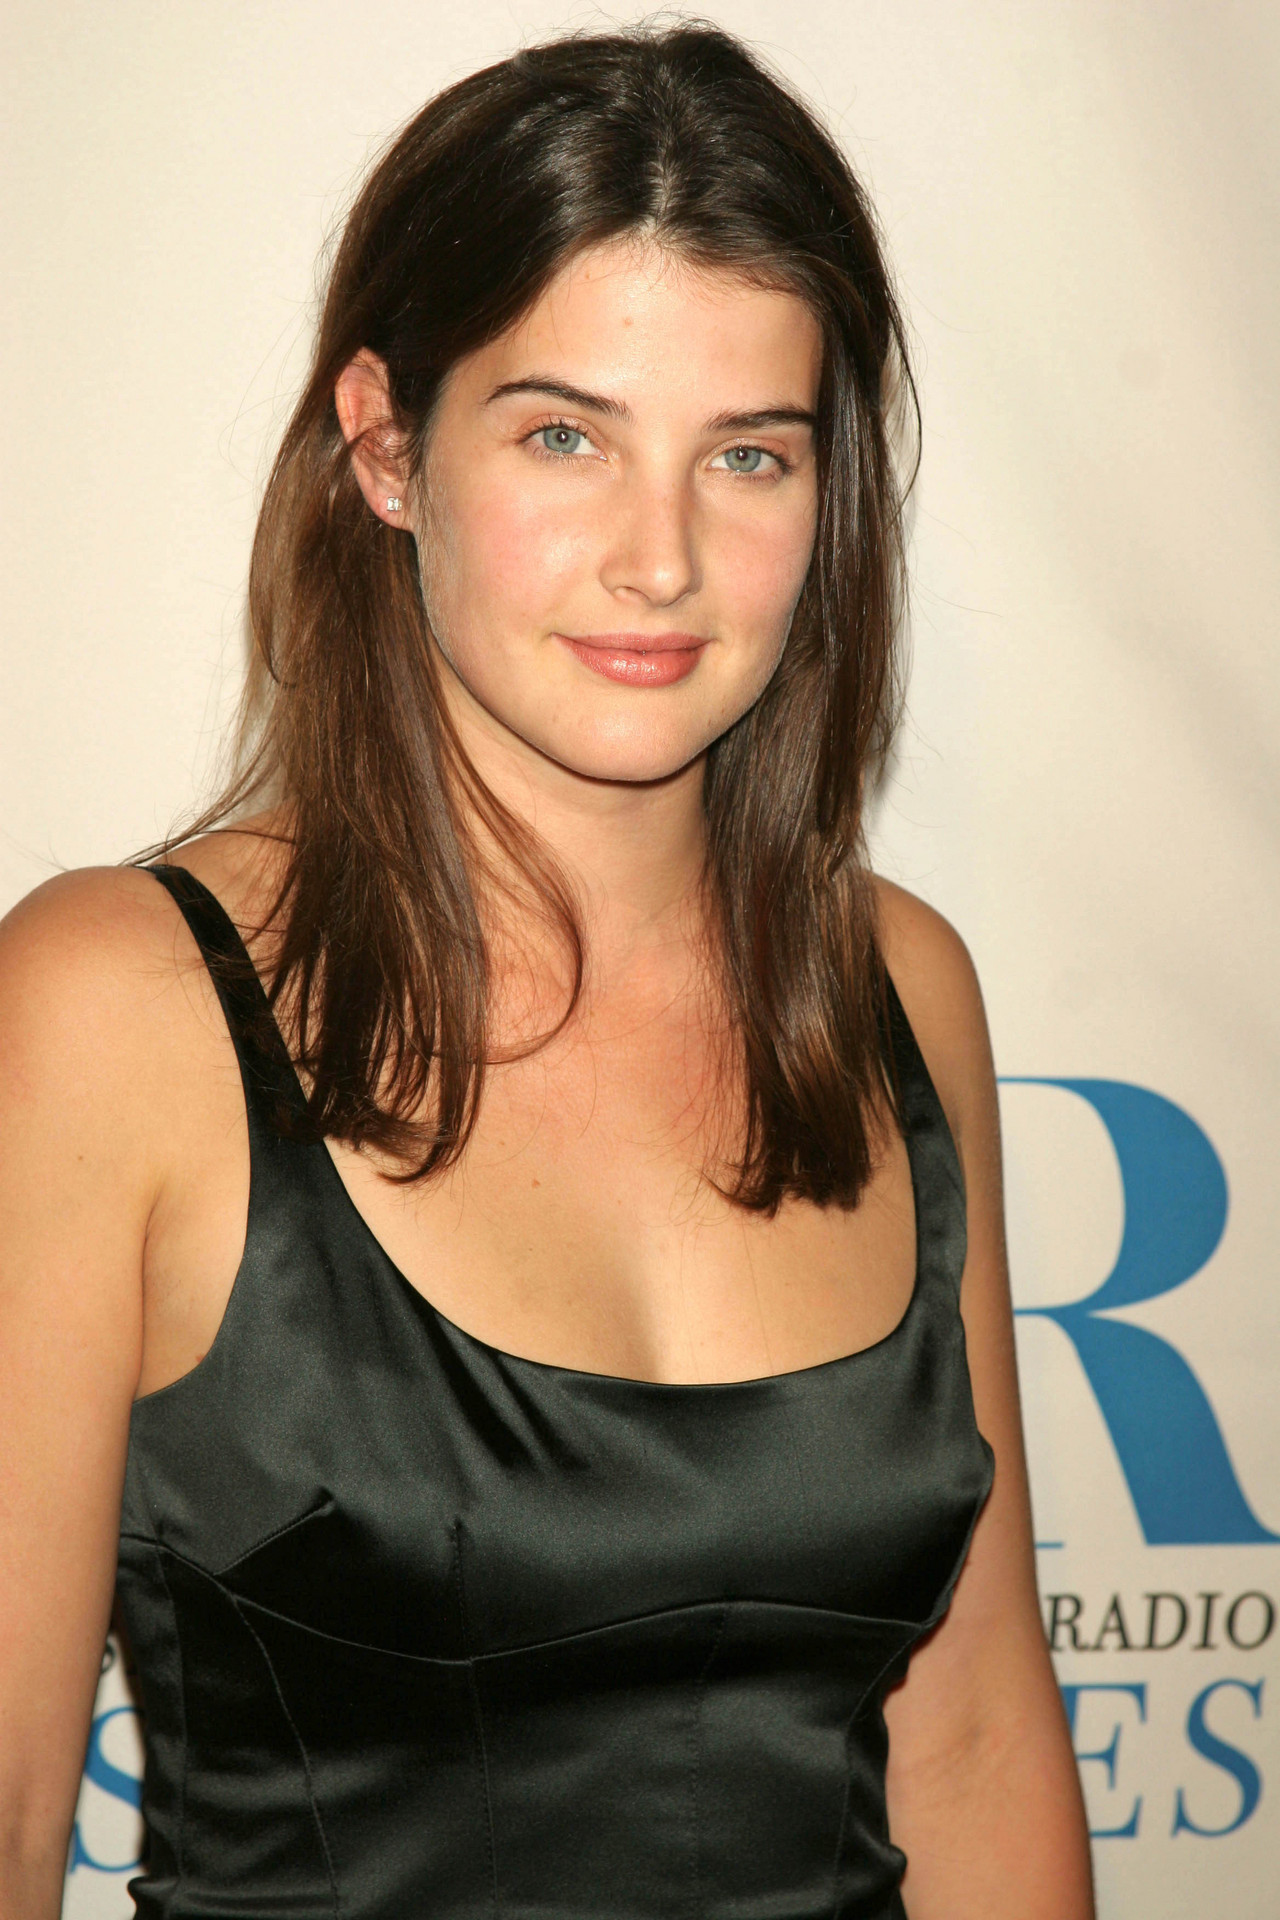 Hot Cobie Smulders nude (45 photo), Pussy, Leaked, Feet, lingerie 2015